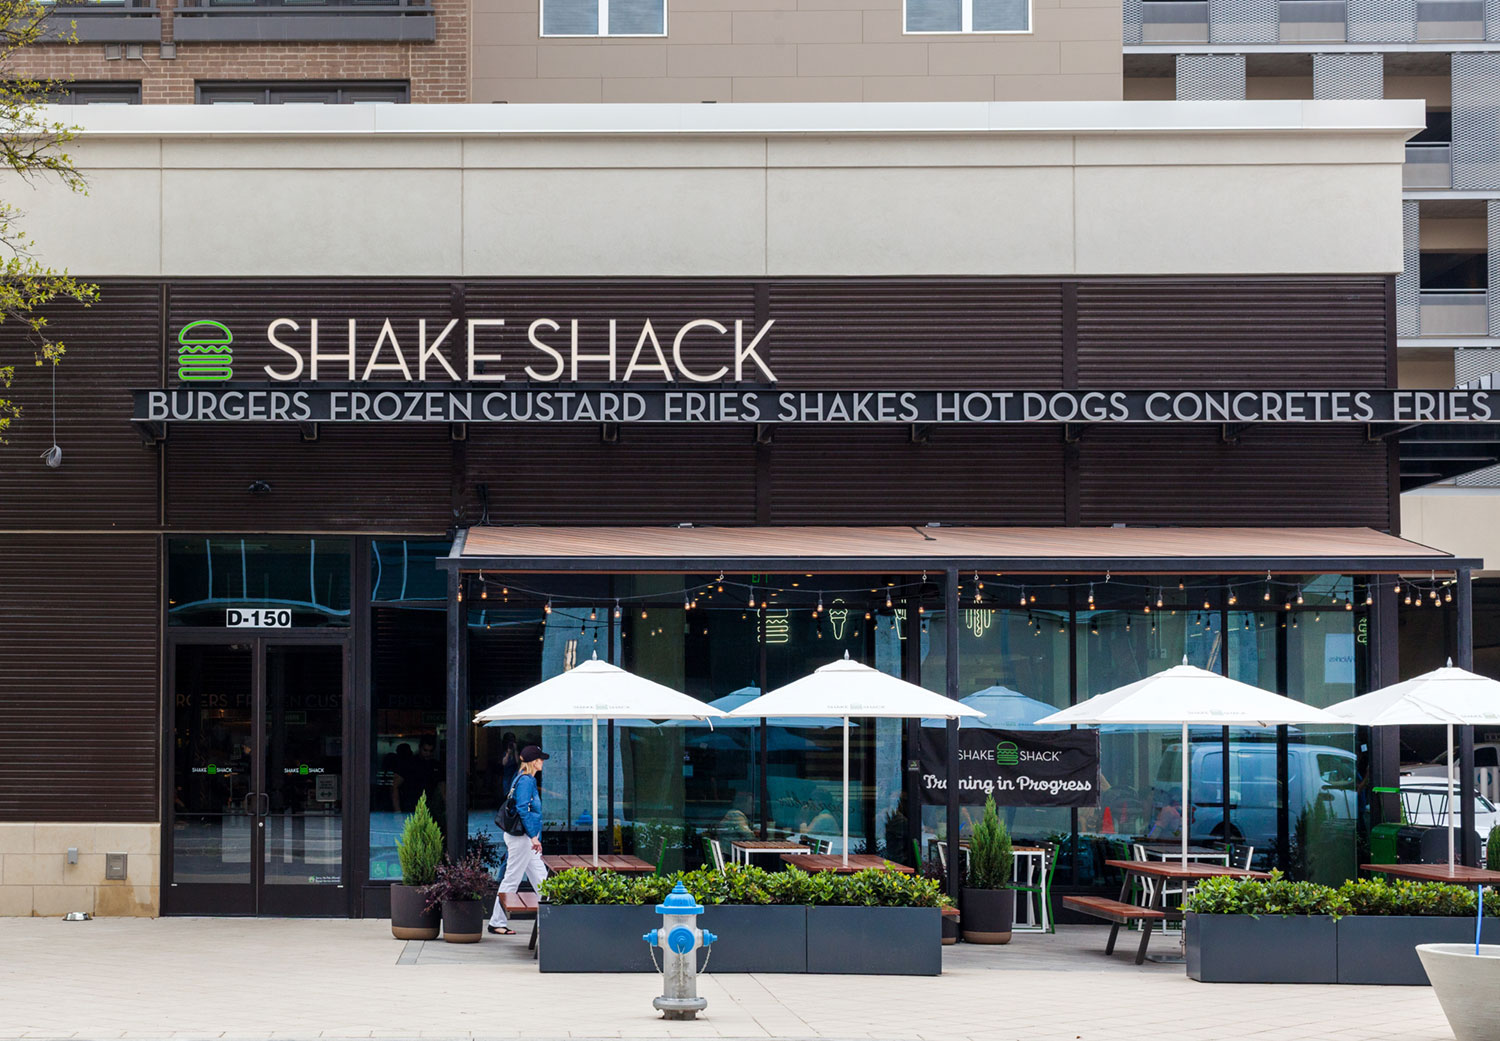 A Shake Shack in Texas